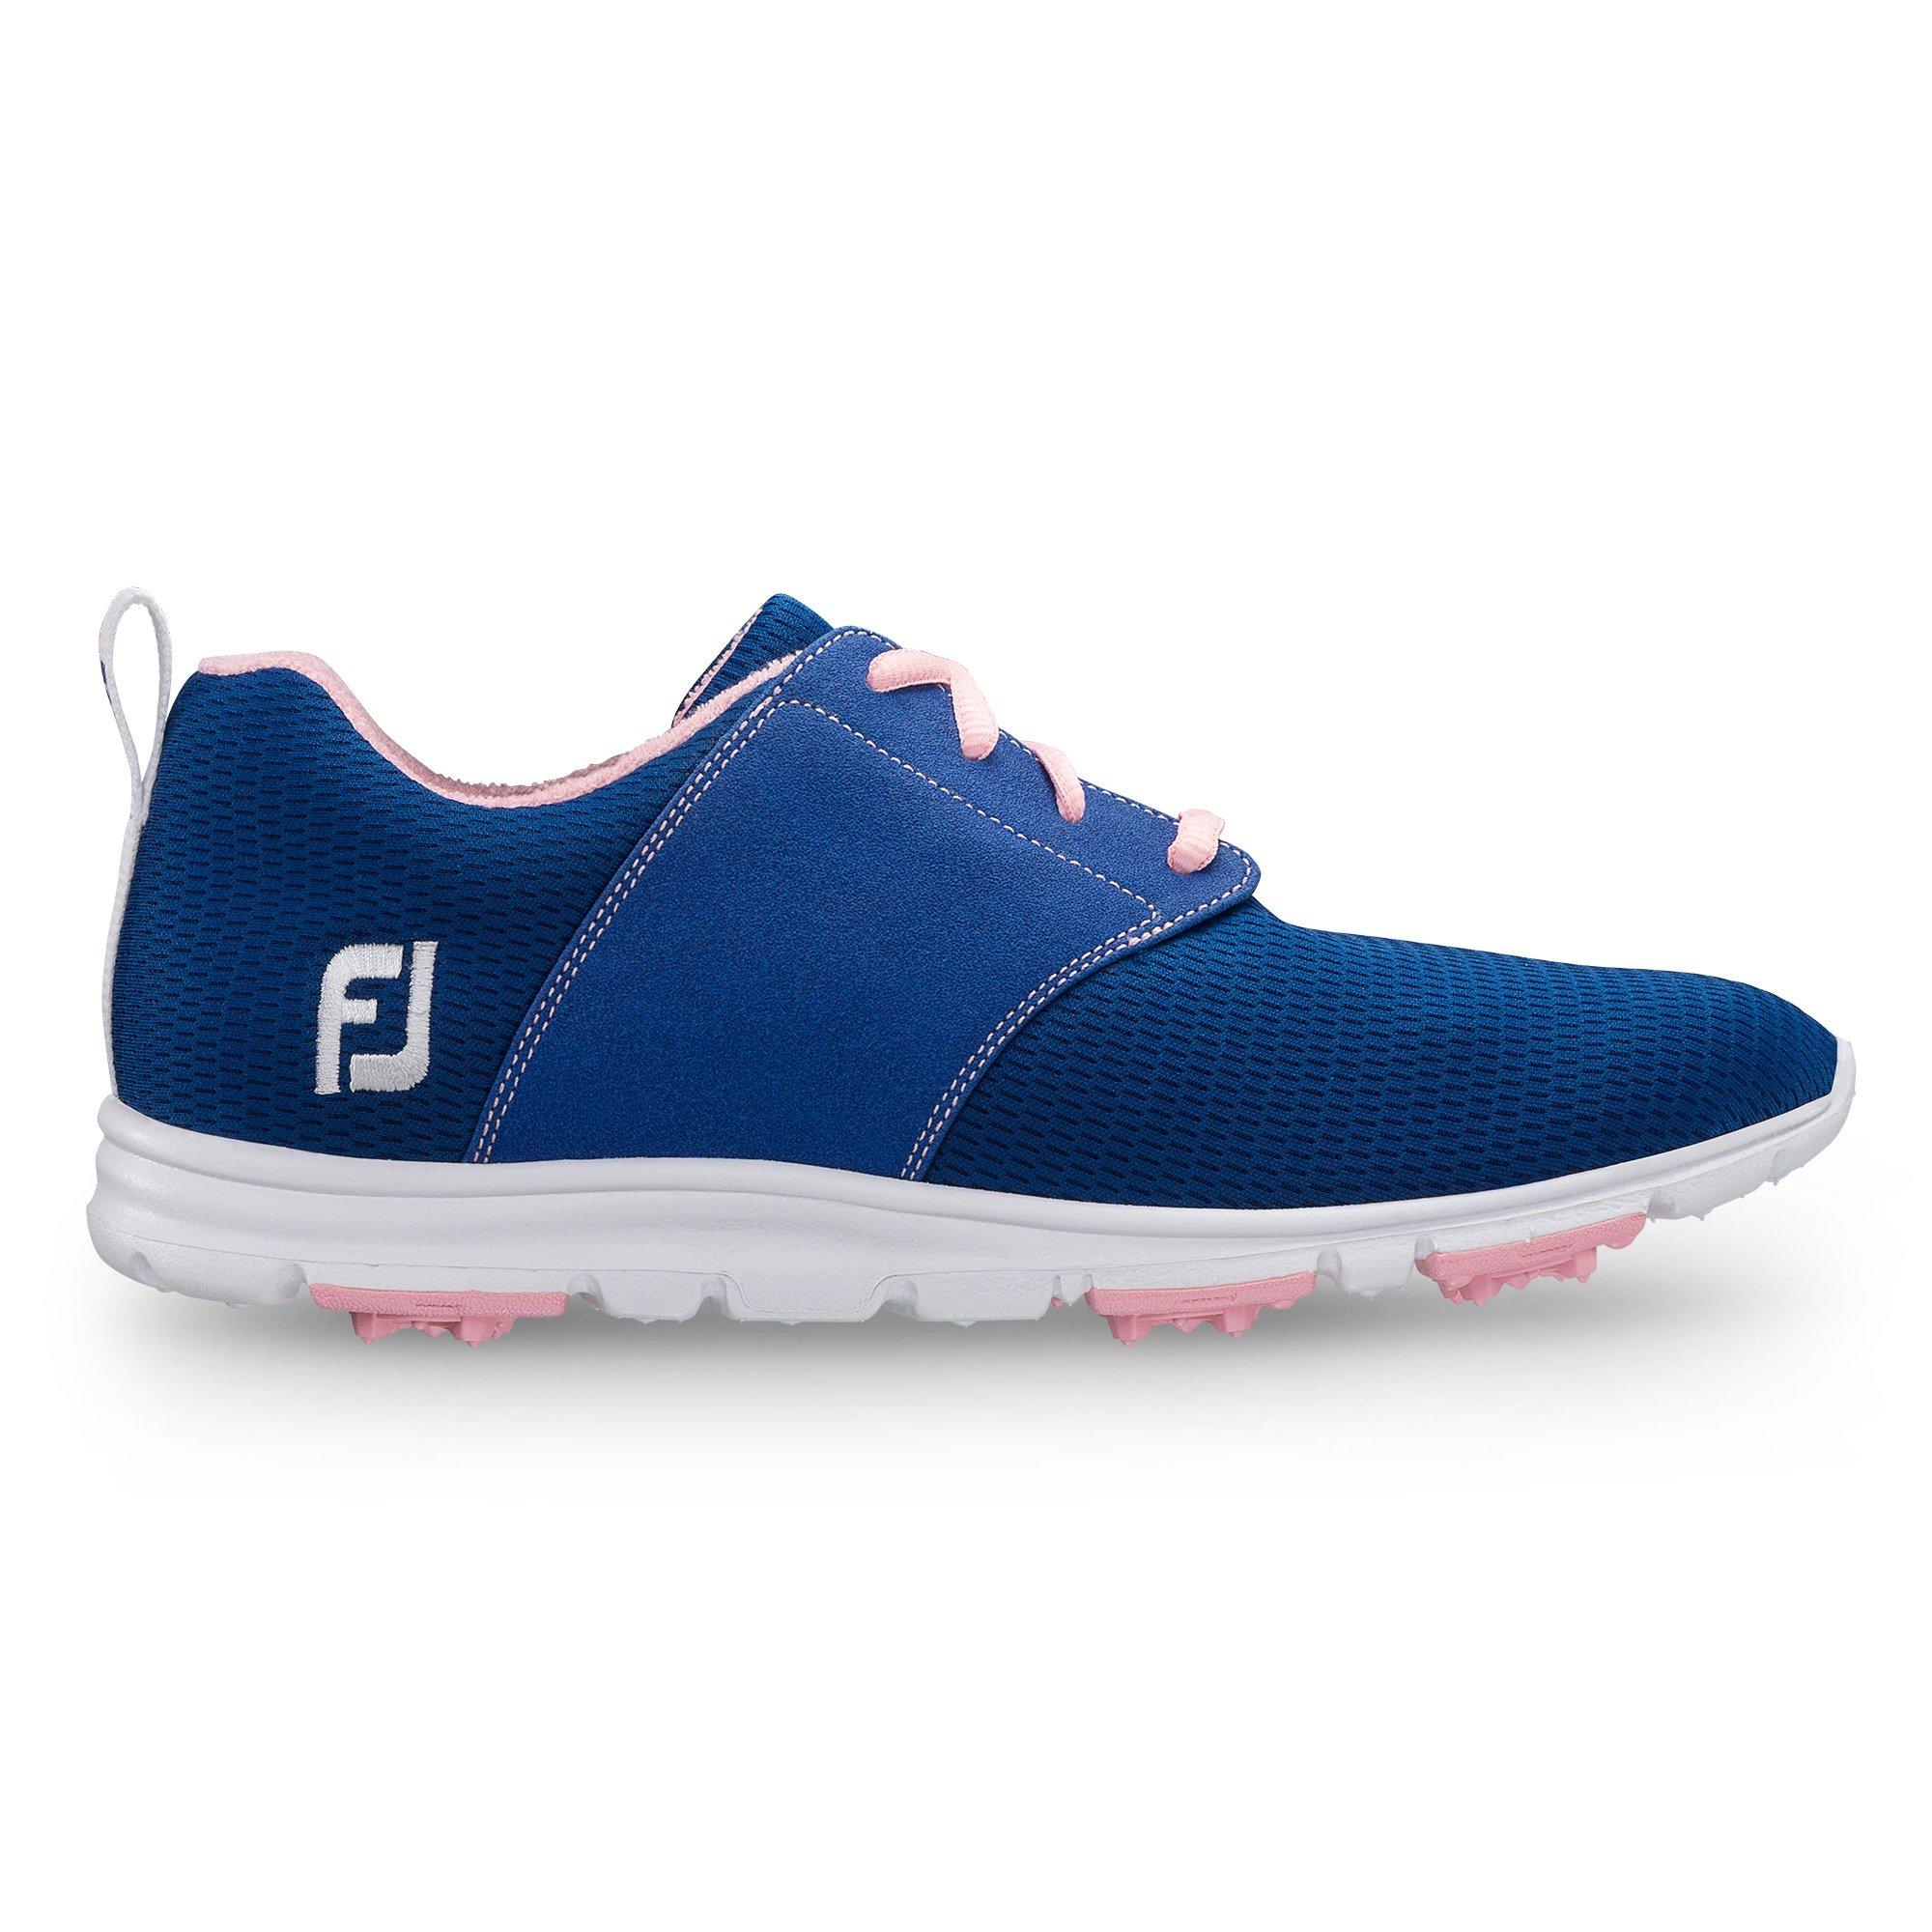 Women's Enjoy Spikeless Golf Shoe - BLU/PNK